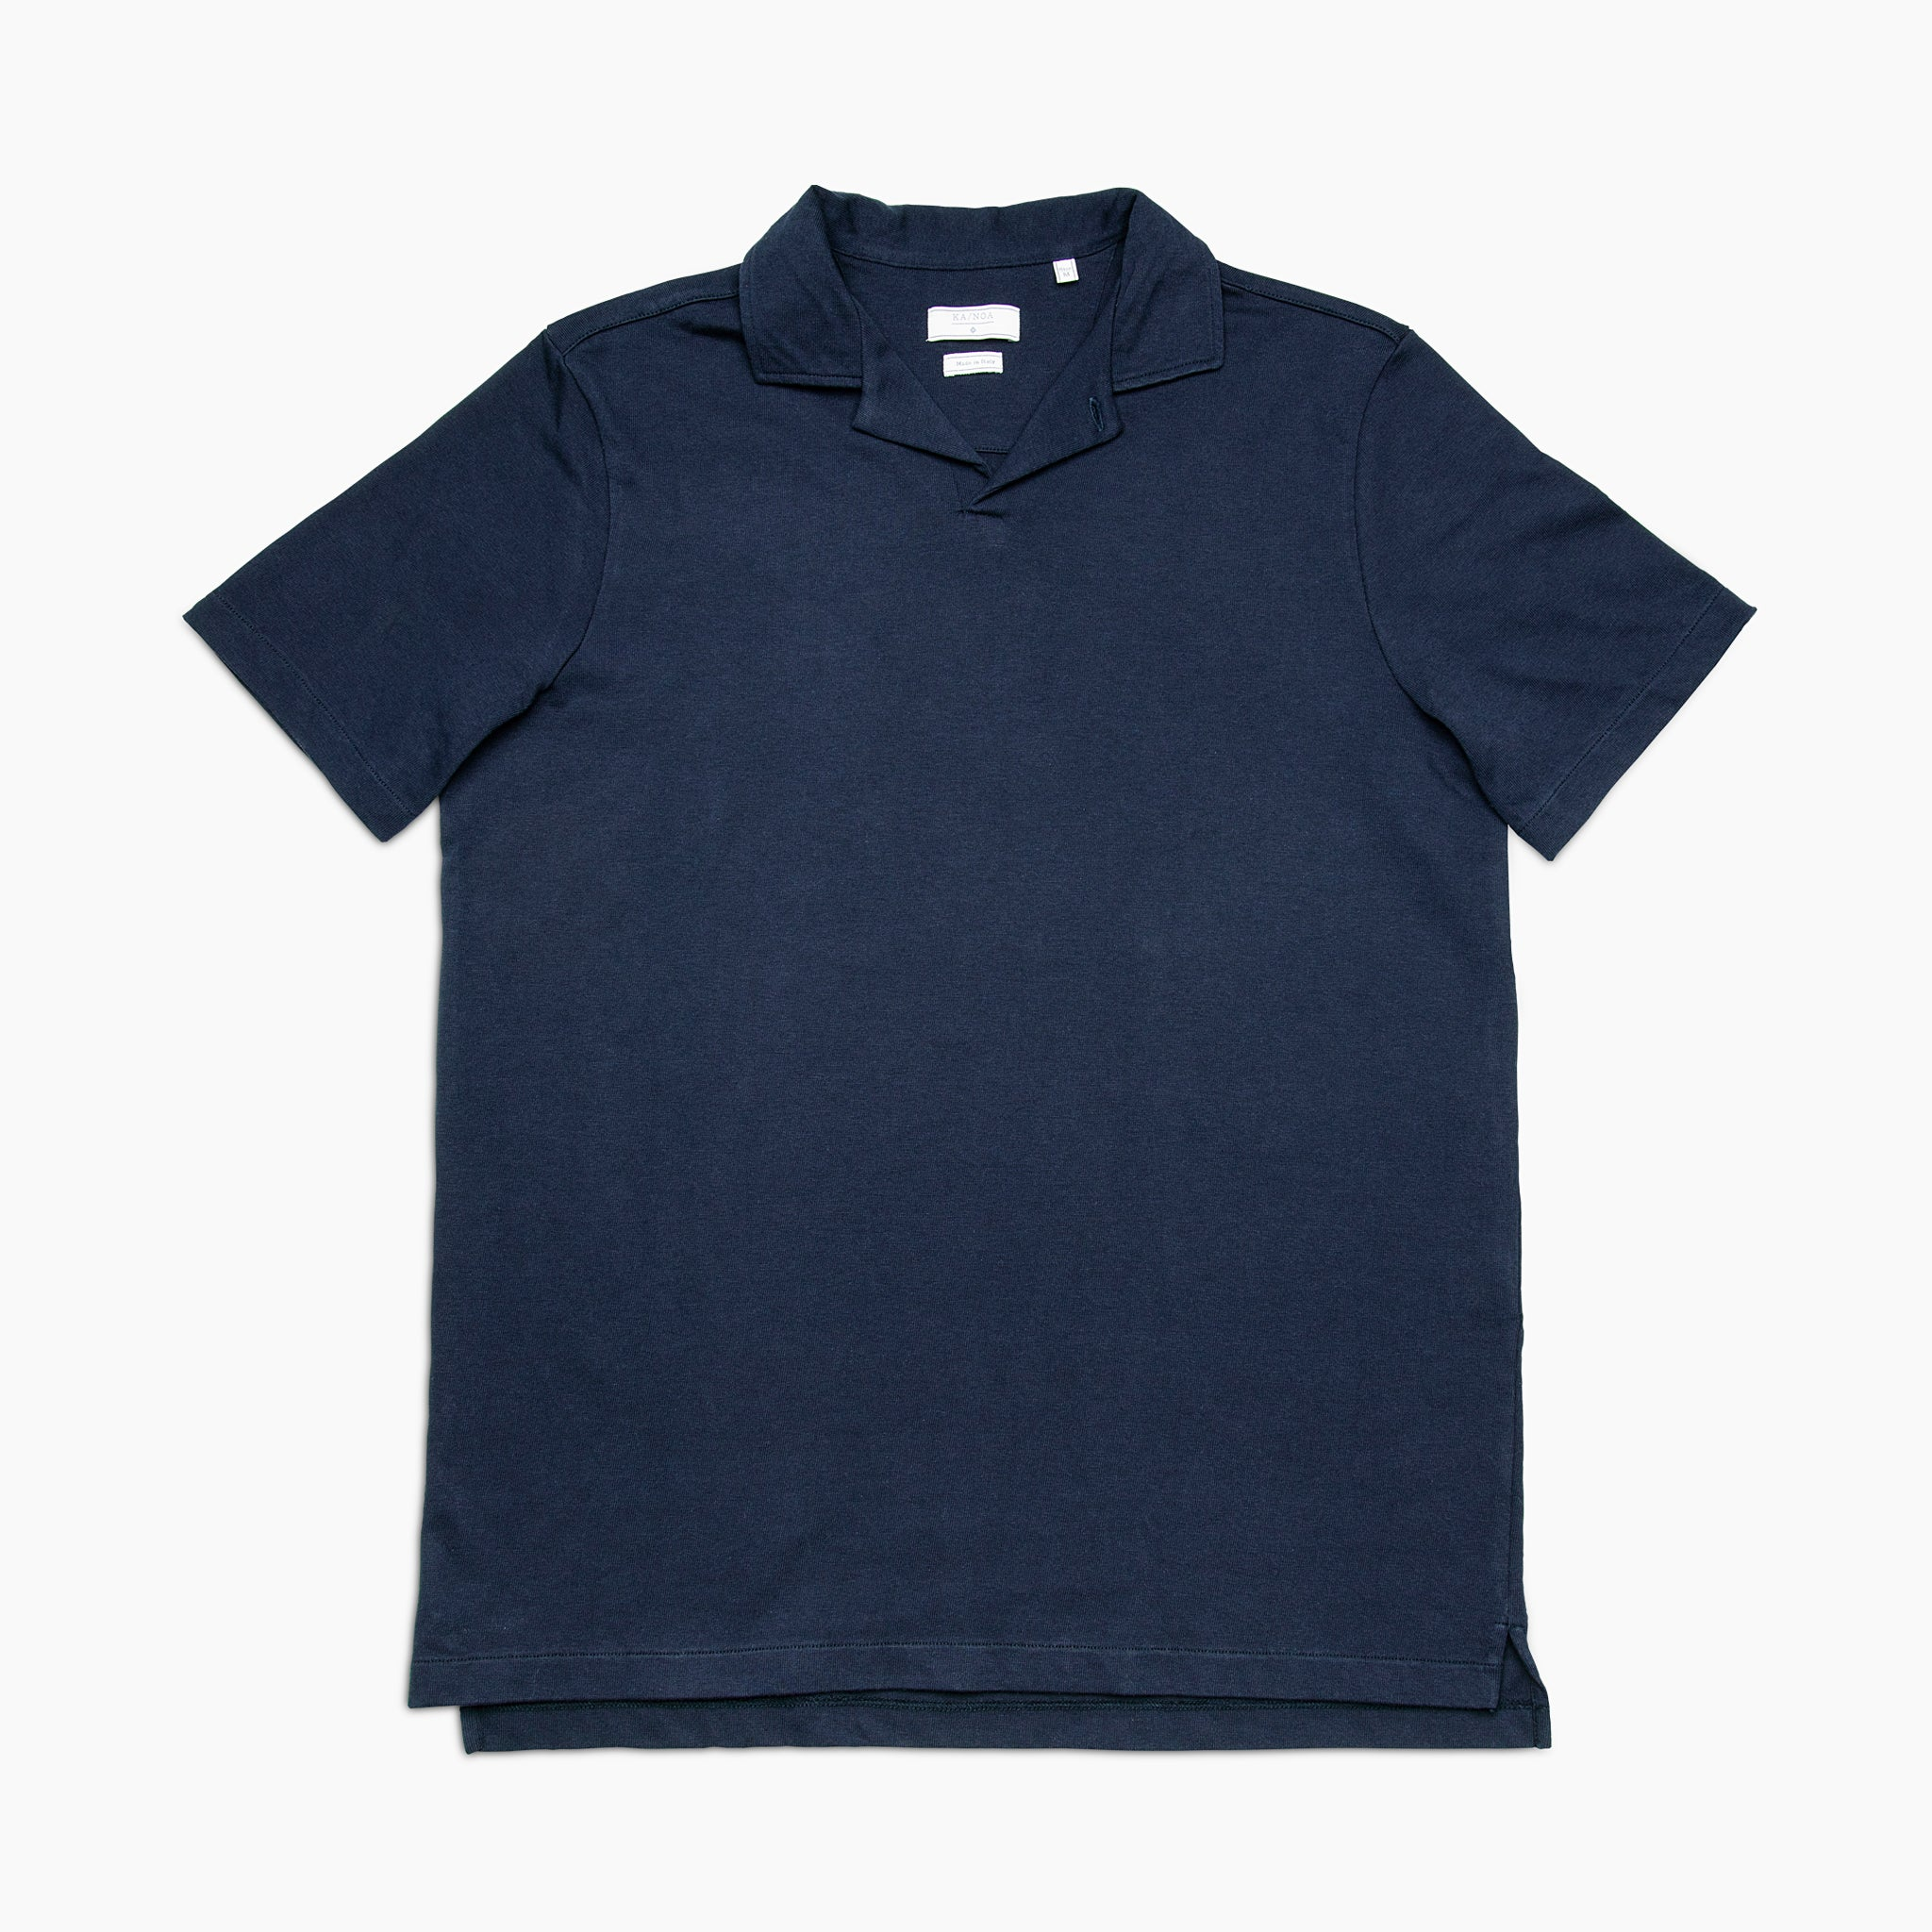 Loran short-sleeved polo in heavy-cotton jersey (dark blue)